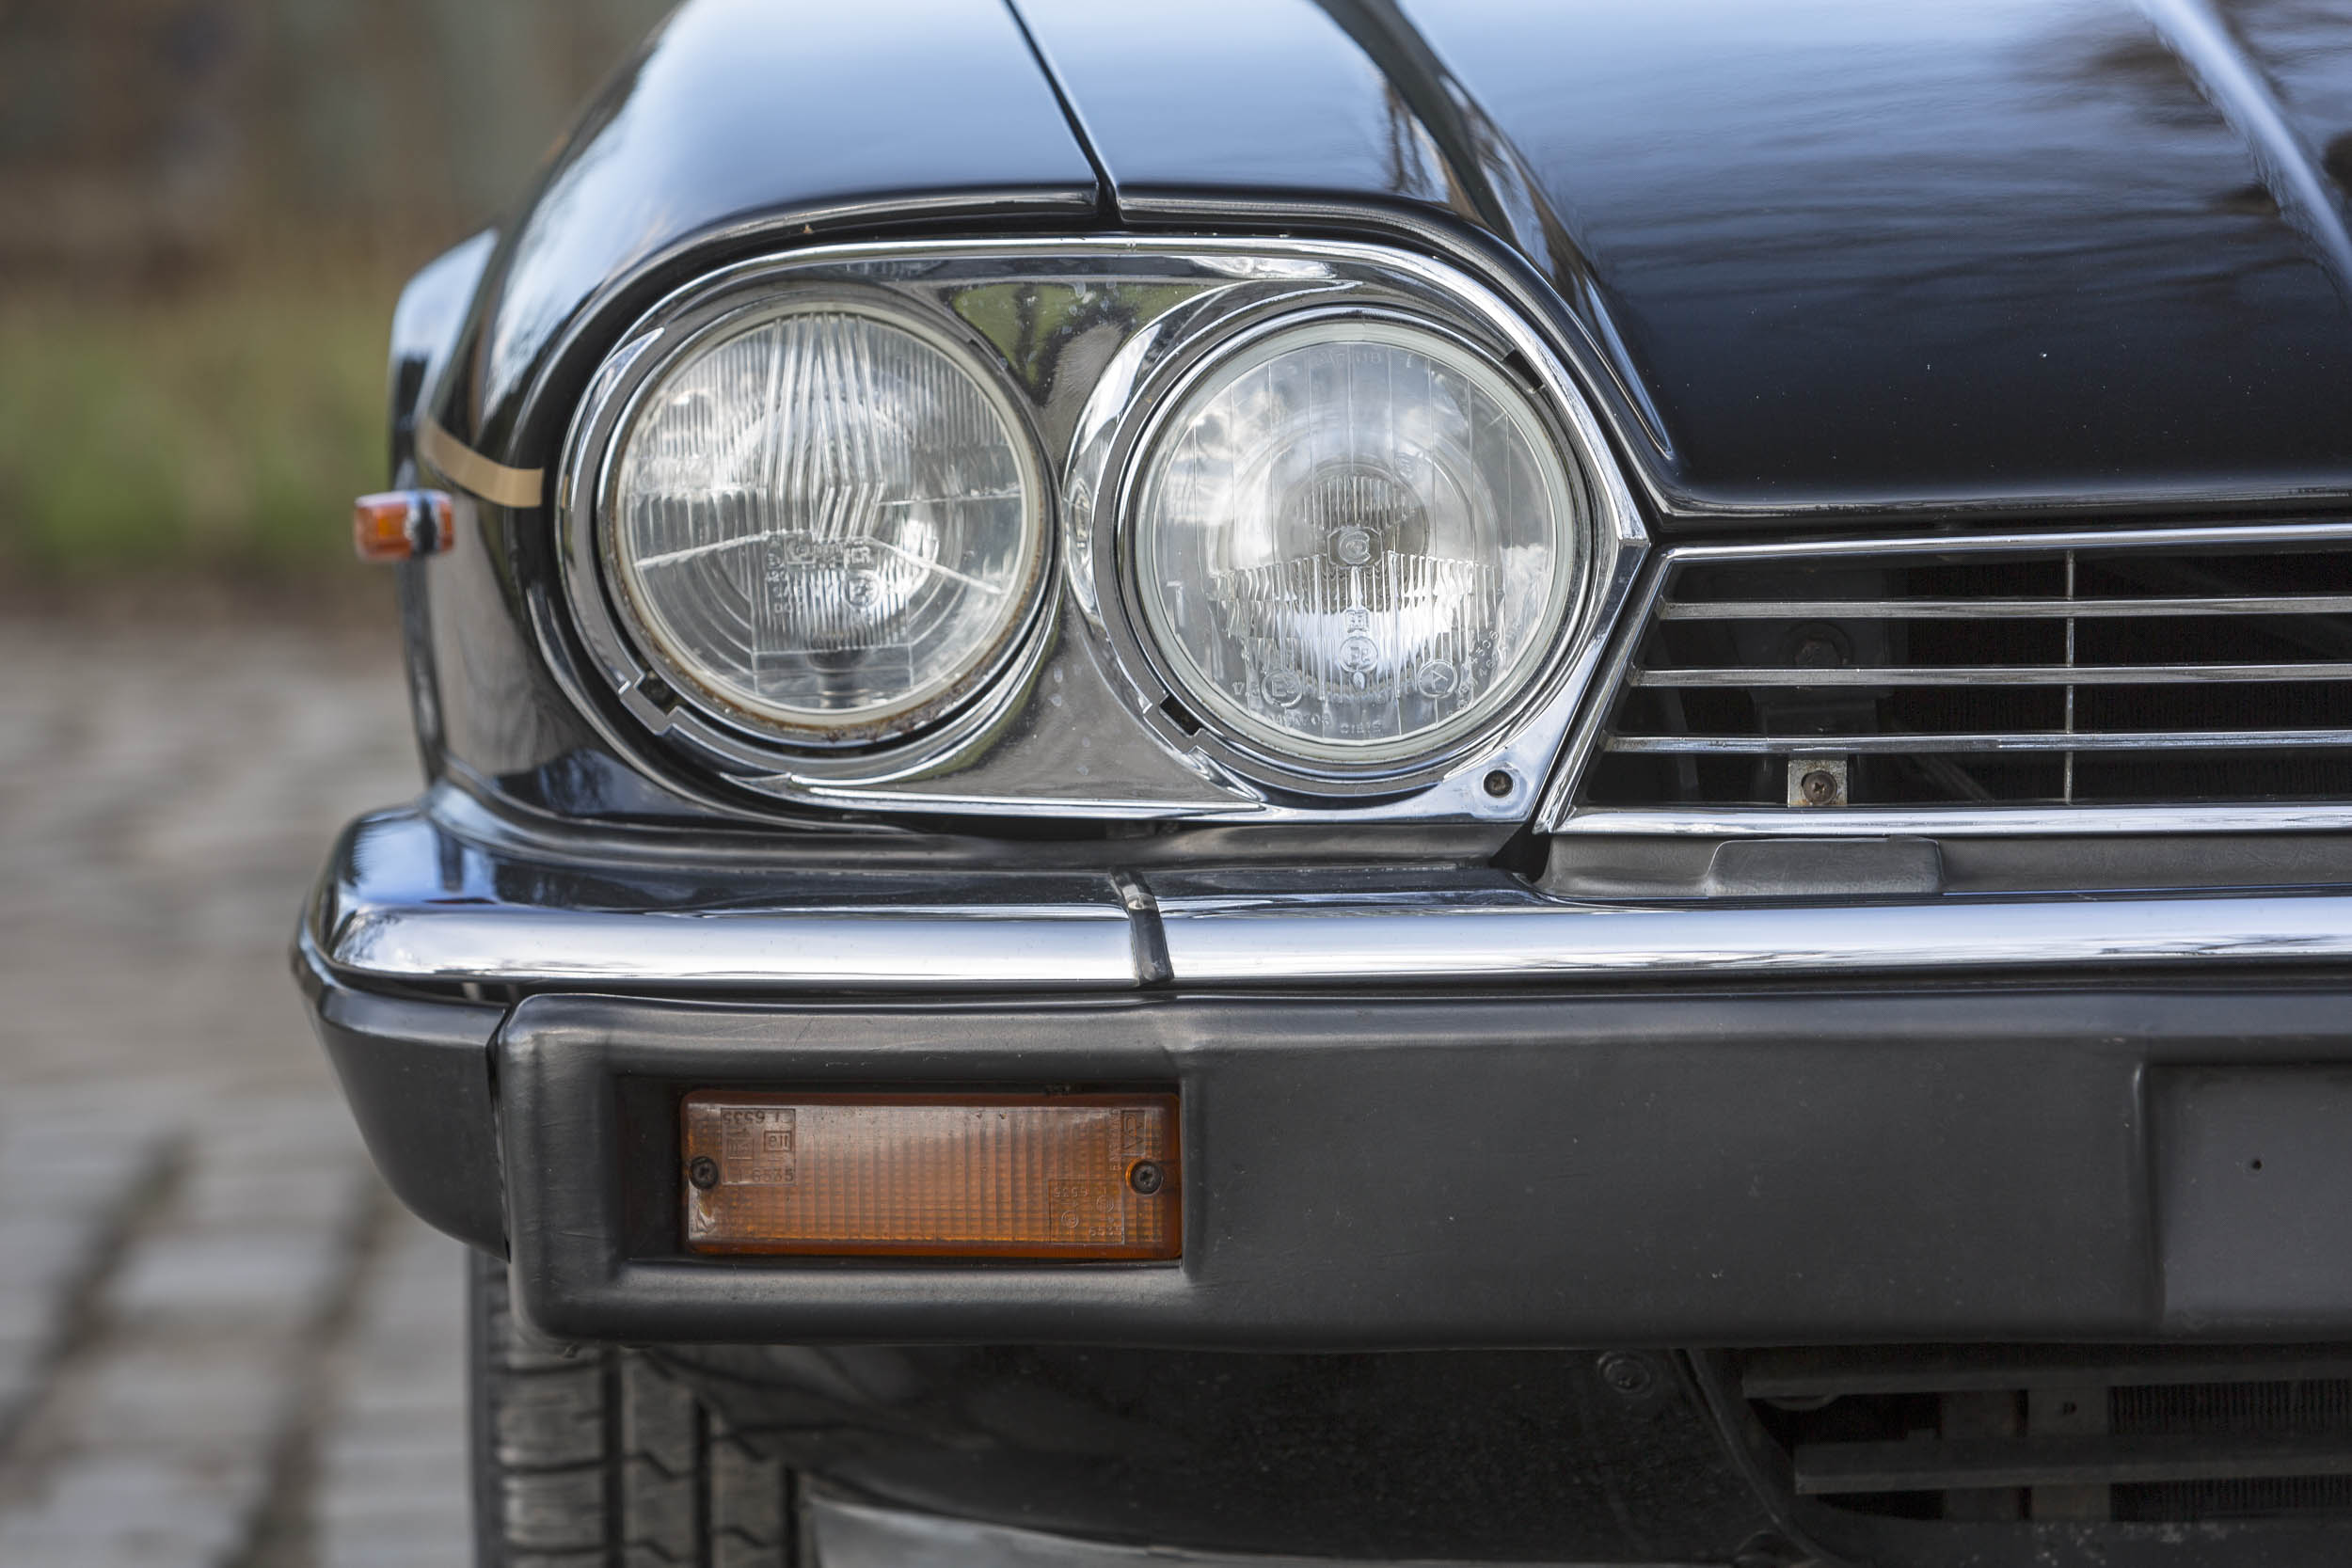 1984 Jaguar XJ-S headlight detail